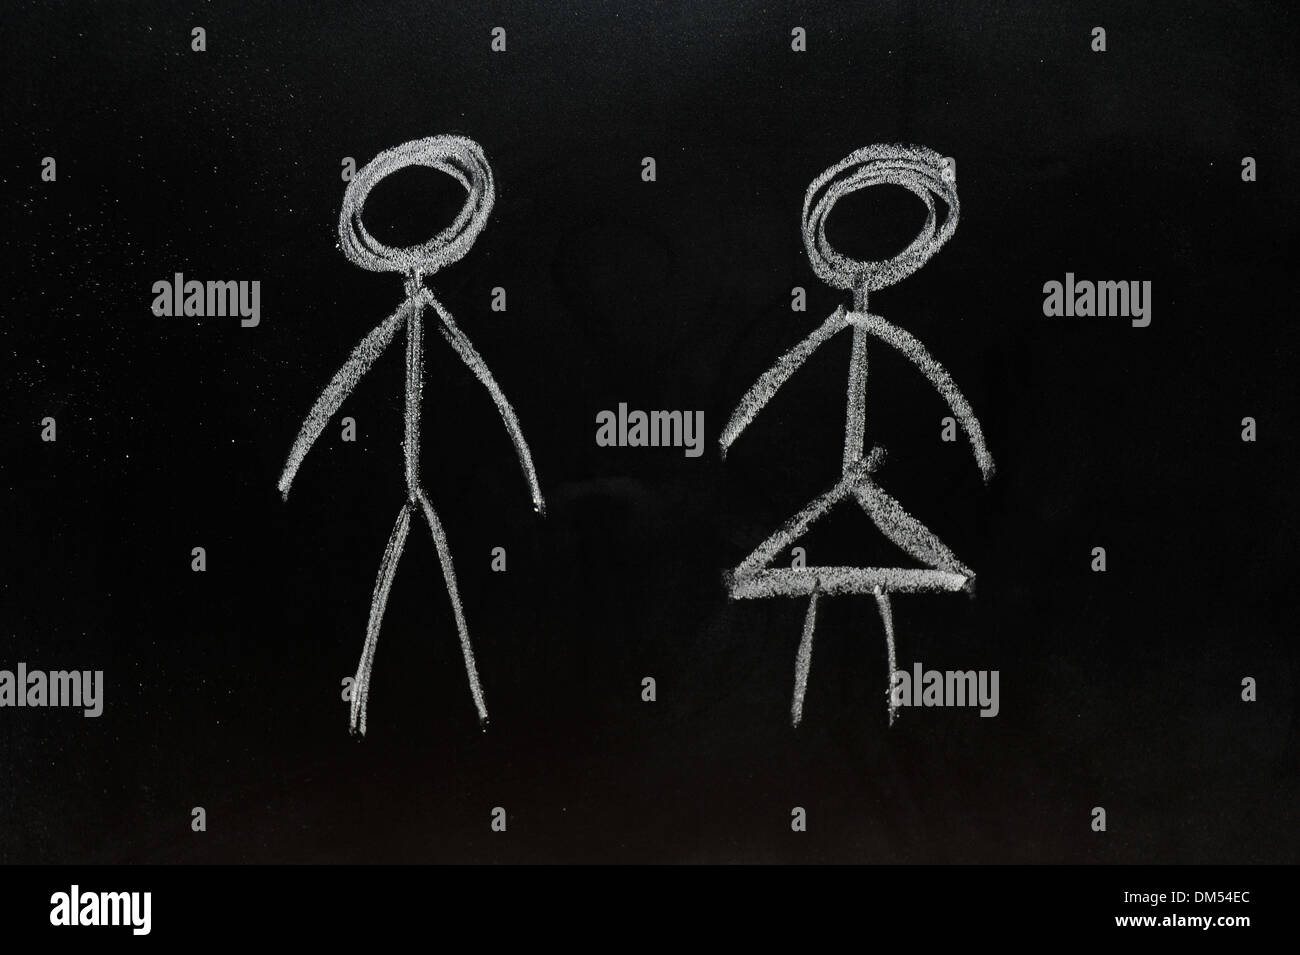 Man and woman stick people drawn on a blackboard in chalk. Stock Photo